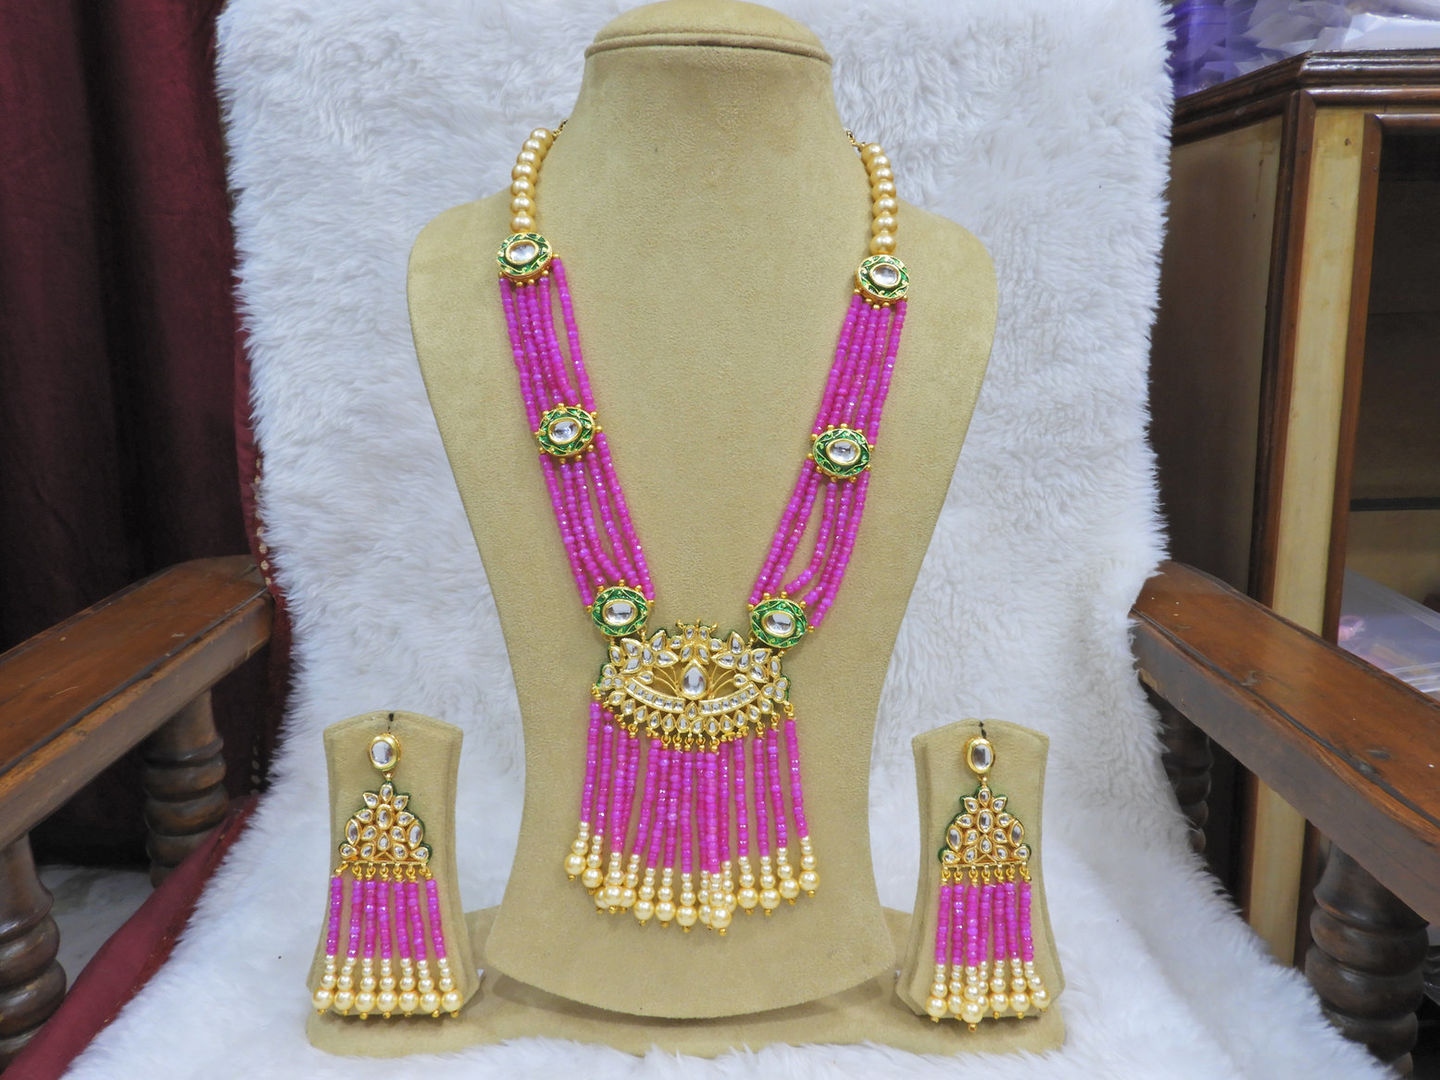 Buy Beads necklace gold in india online | 250+ Latest Designs